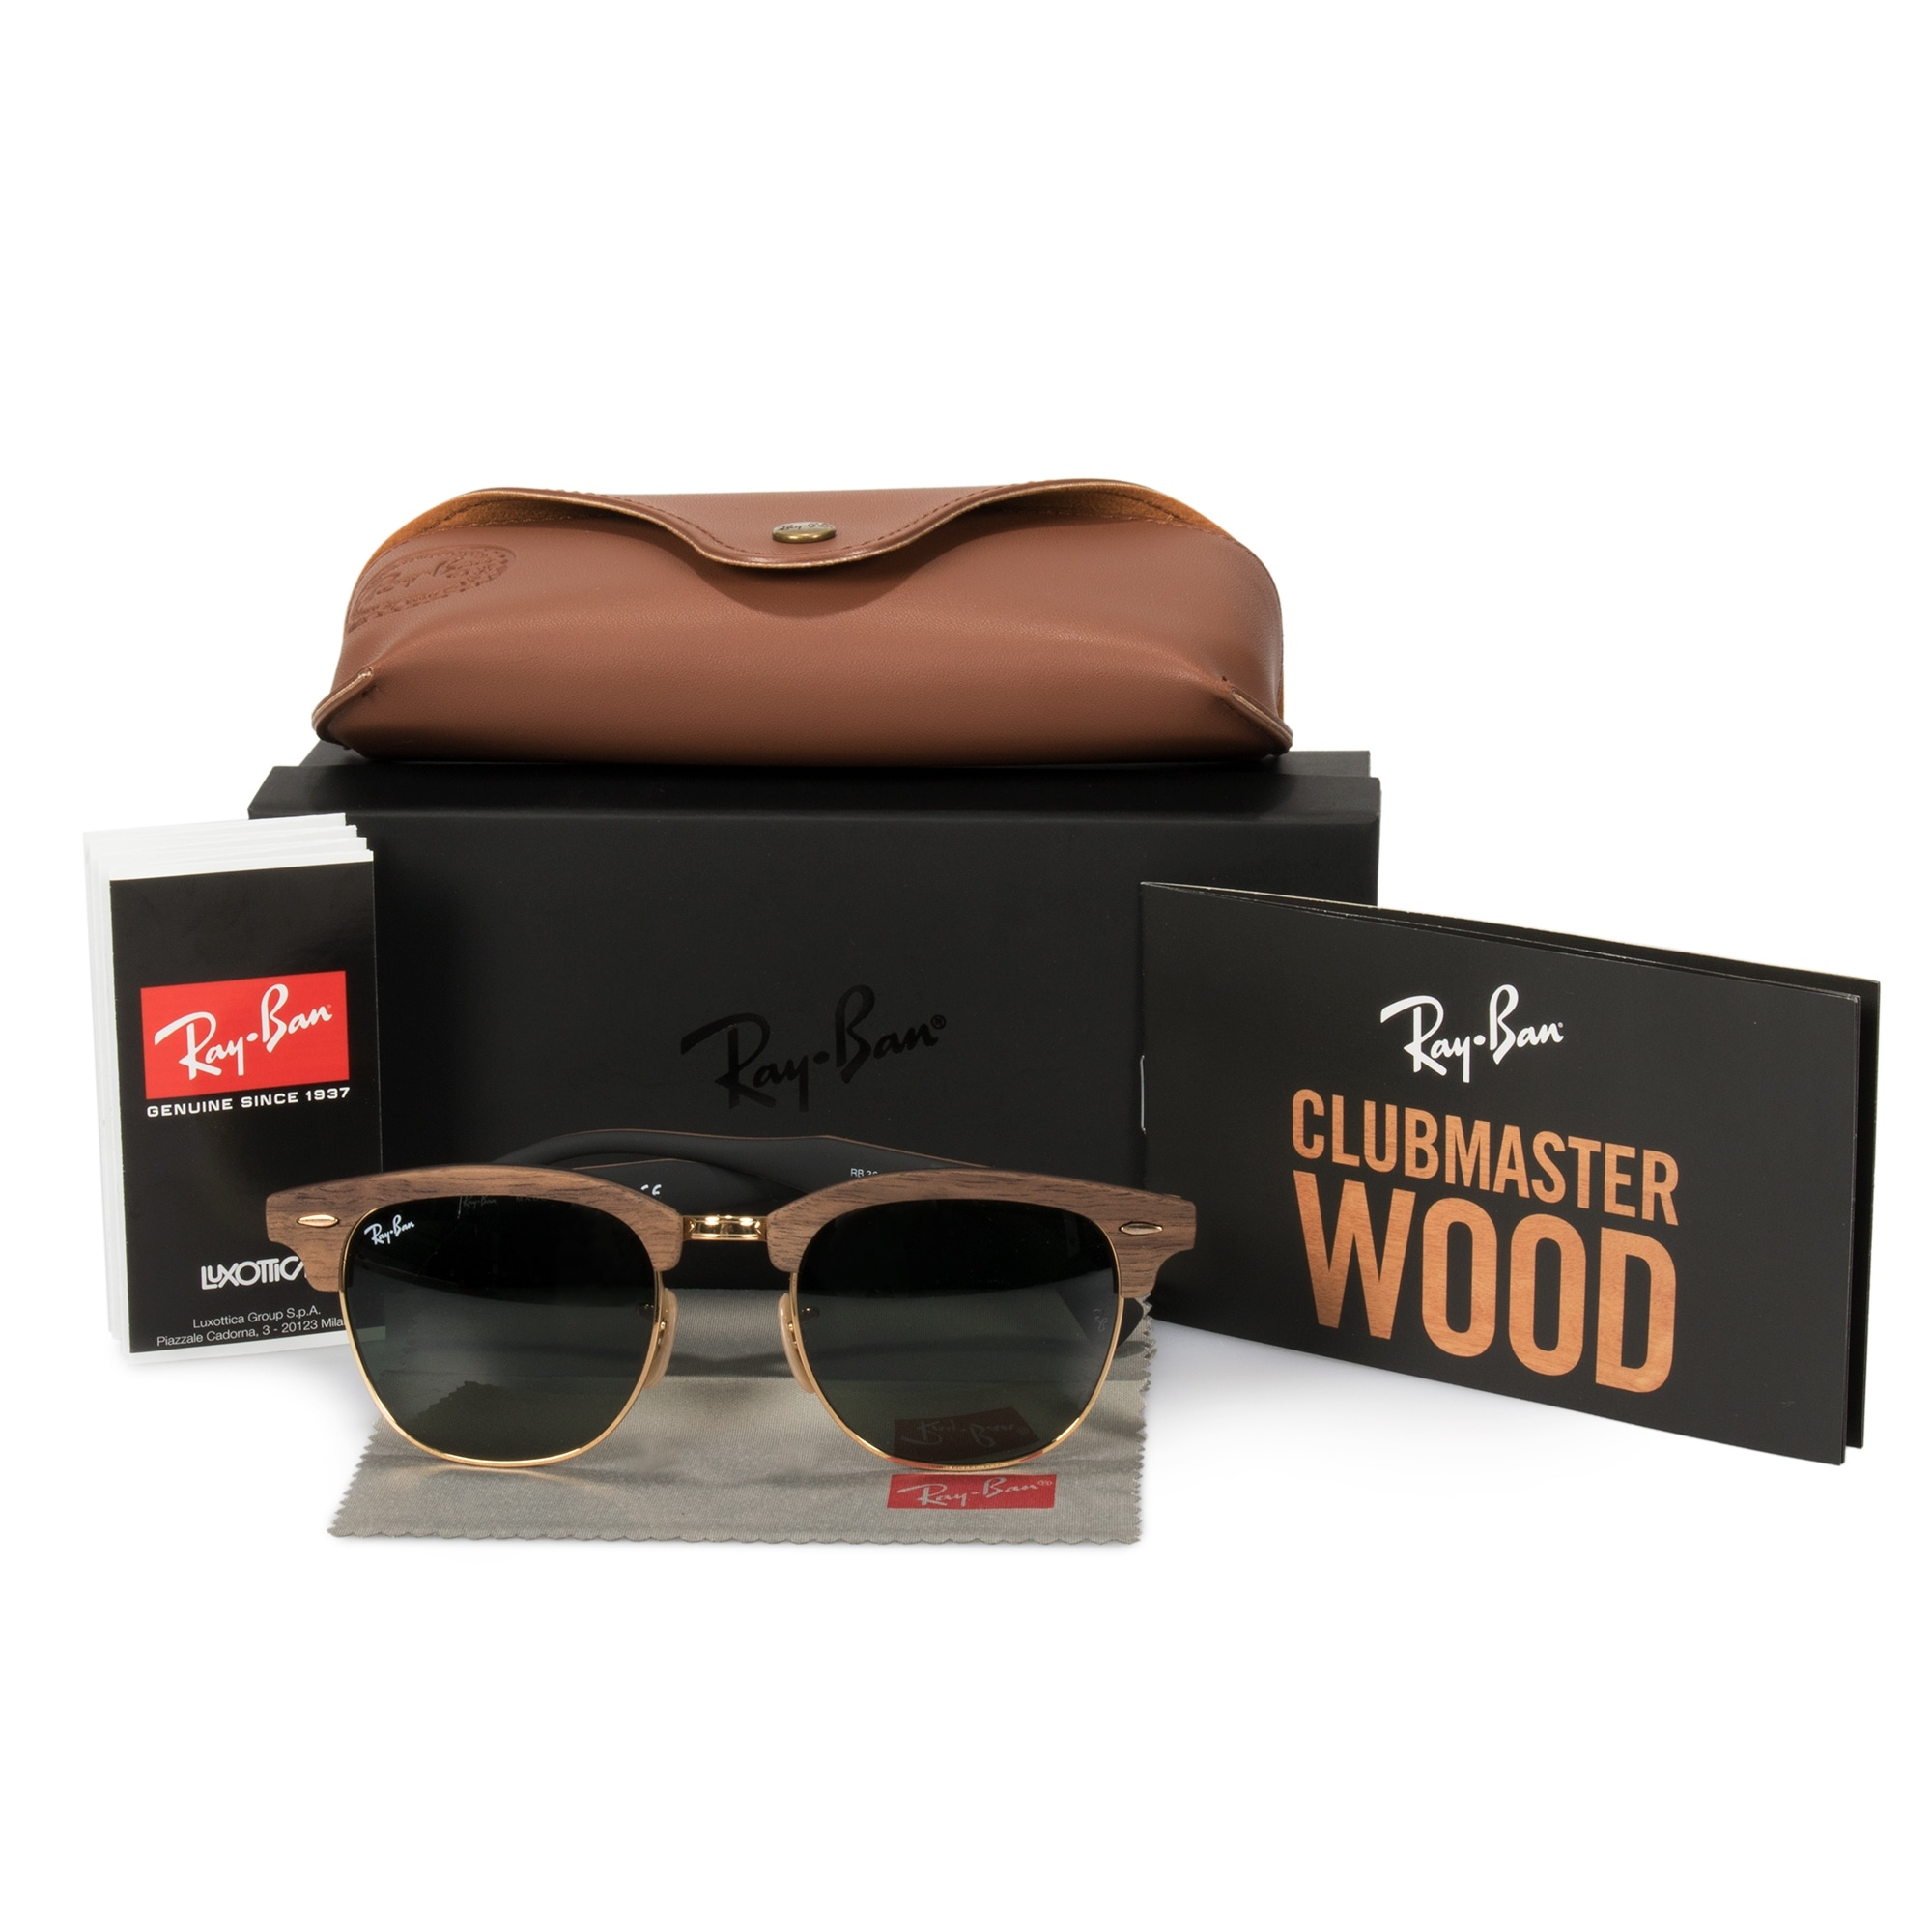 e5857863ddf8c Shop Ray-Ban Clubmaster Wood Sunglasses RB3016M 1181 51 - Free Shipping  Today - Overstock - 23138772